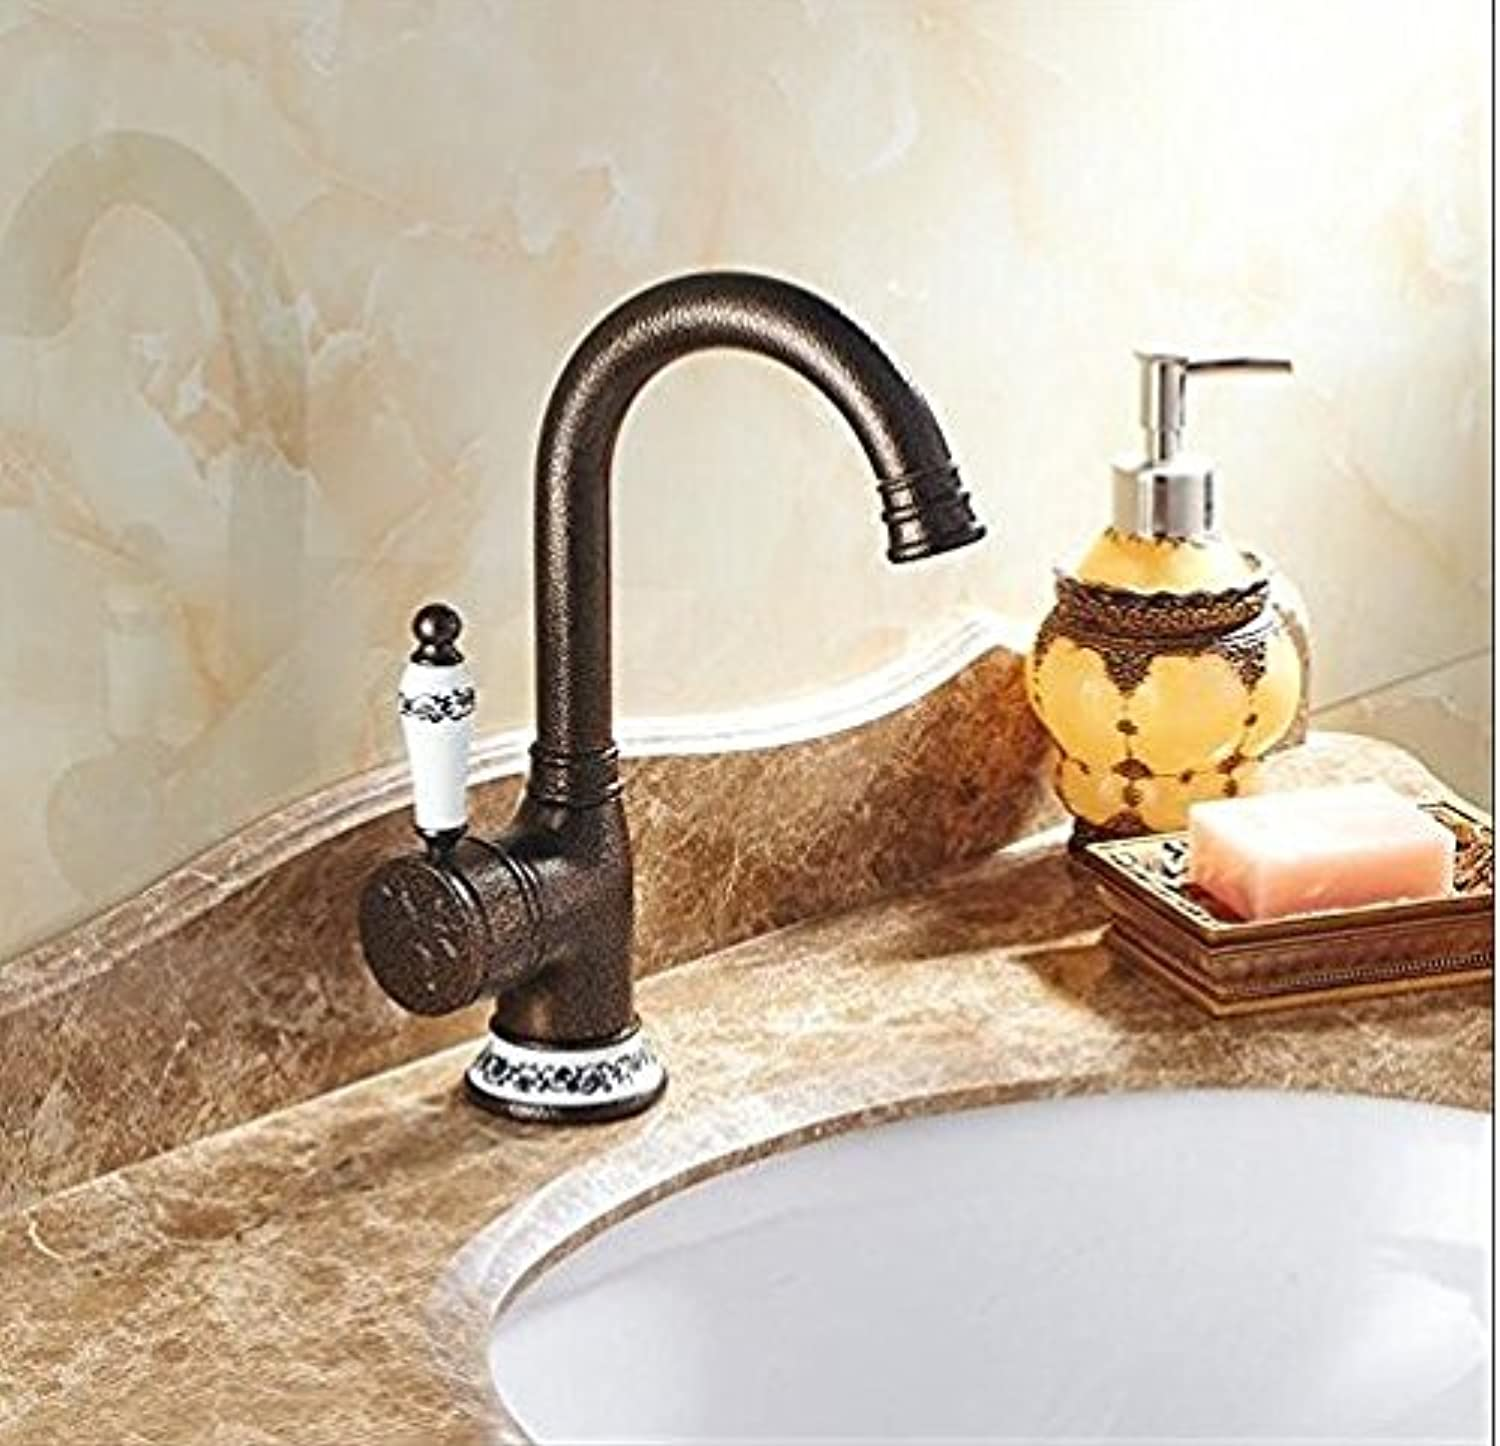 Diongrdk Bronze Finish Bathroom Faucets Kitchen Faucet Basin Faucets Single Handle Hot and Cold Basin Faucet Tap